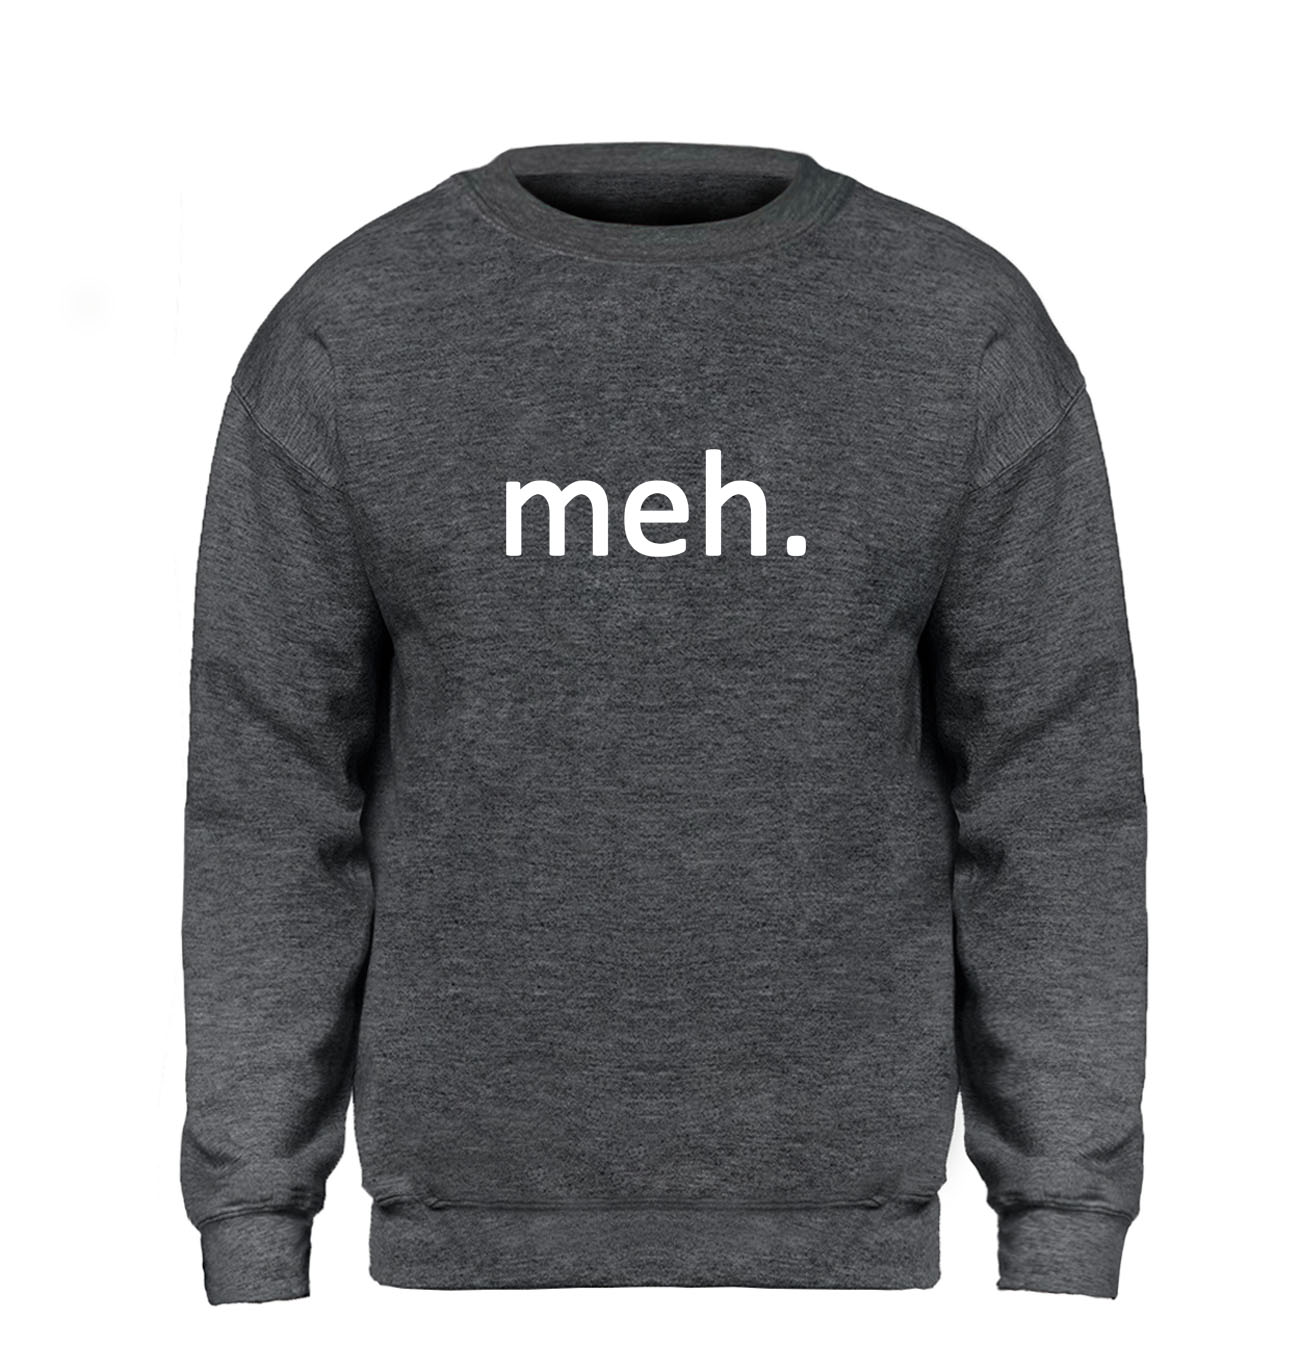 Meh Internet Geek Nerd Hoodie Men Funny Fitness Sweatshirt Hipster Sweatshirts Brand Winter Autumn Fleece Warm Gray Streetwear